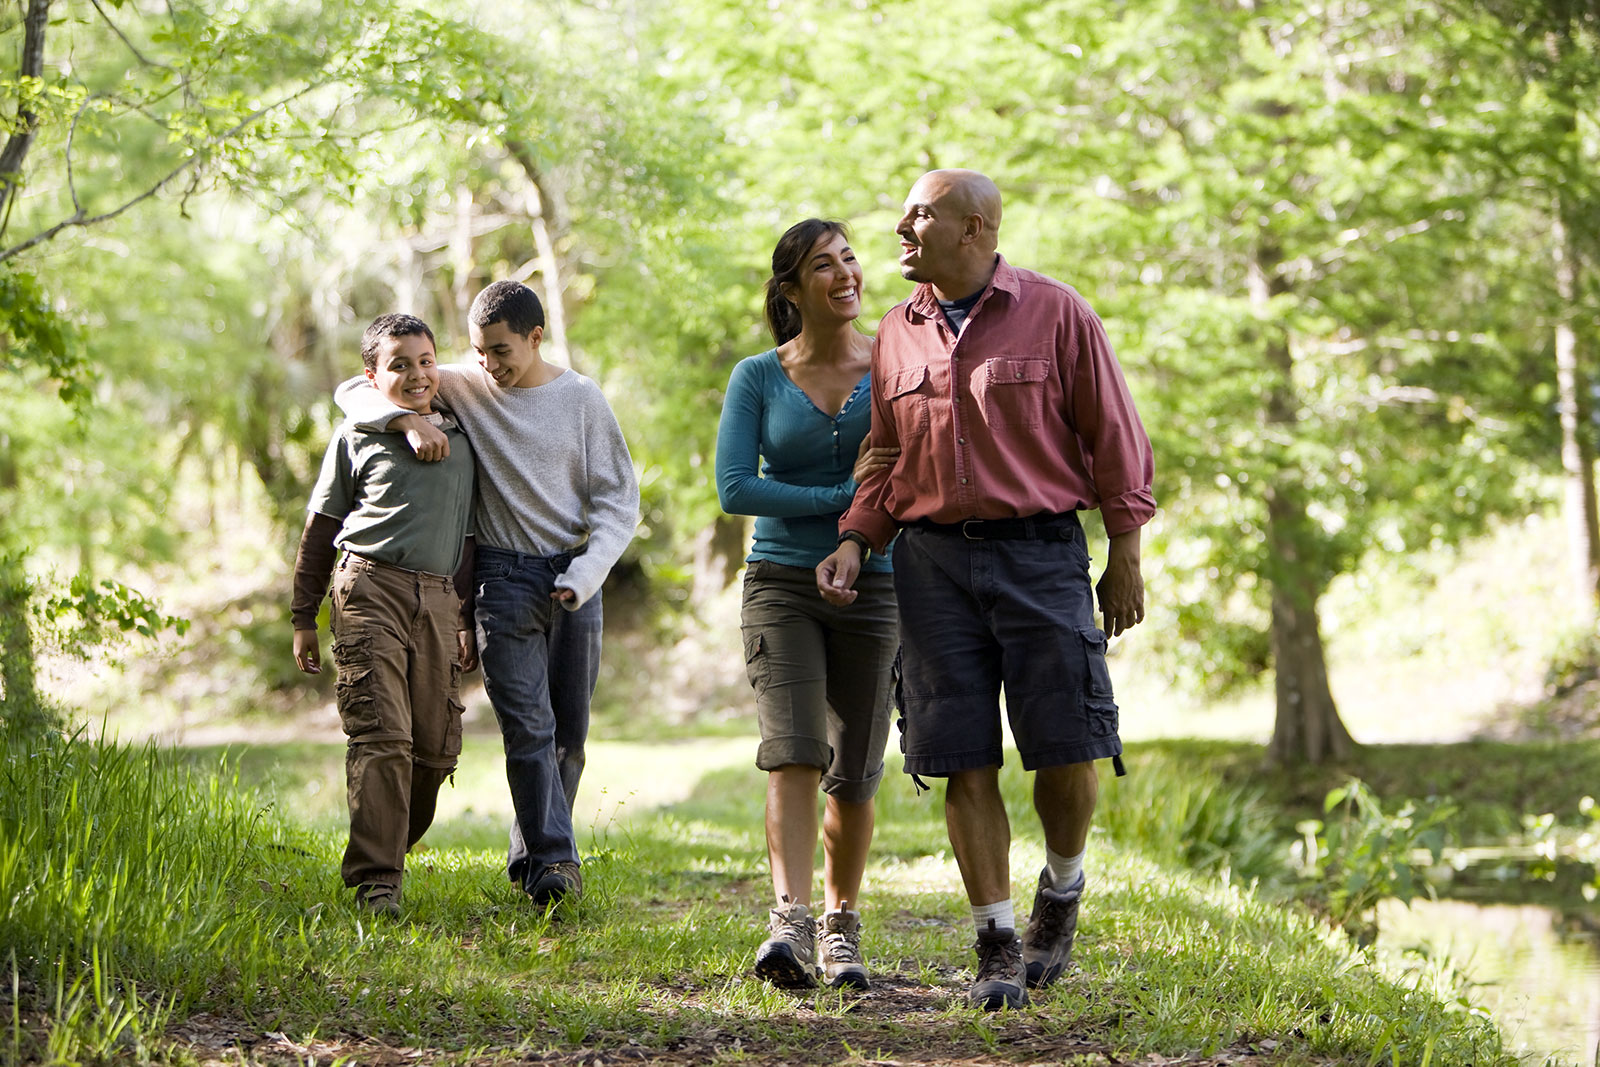 Hispanic family with two teen boys on a hike in the park